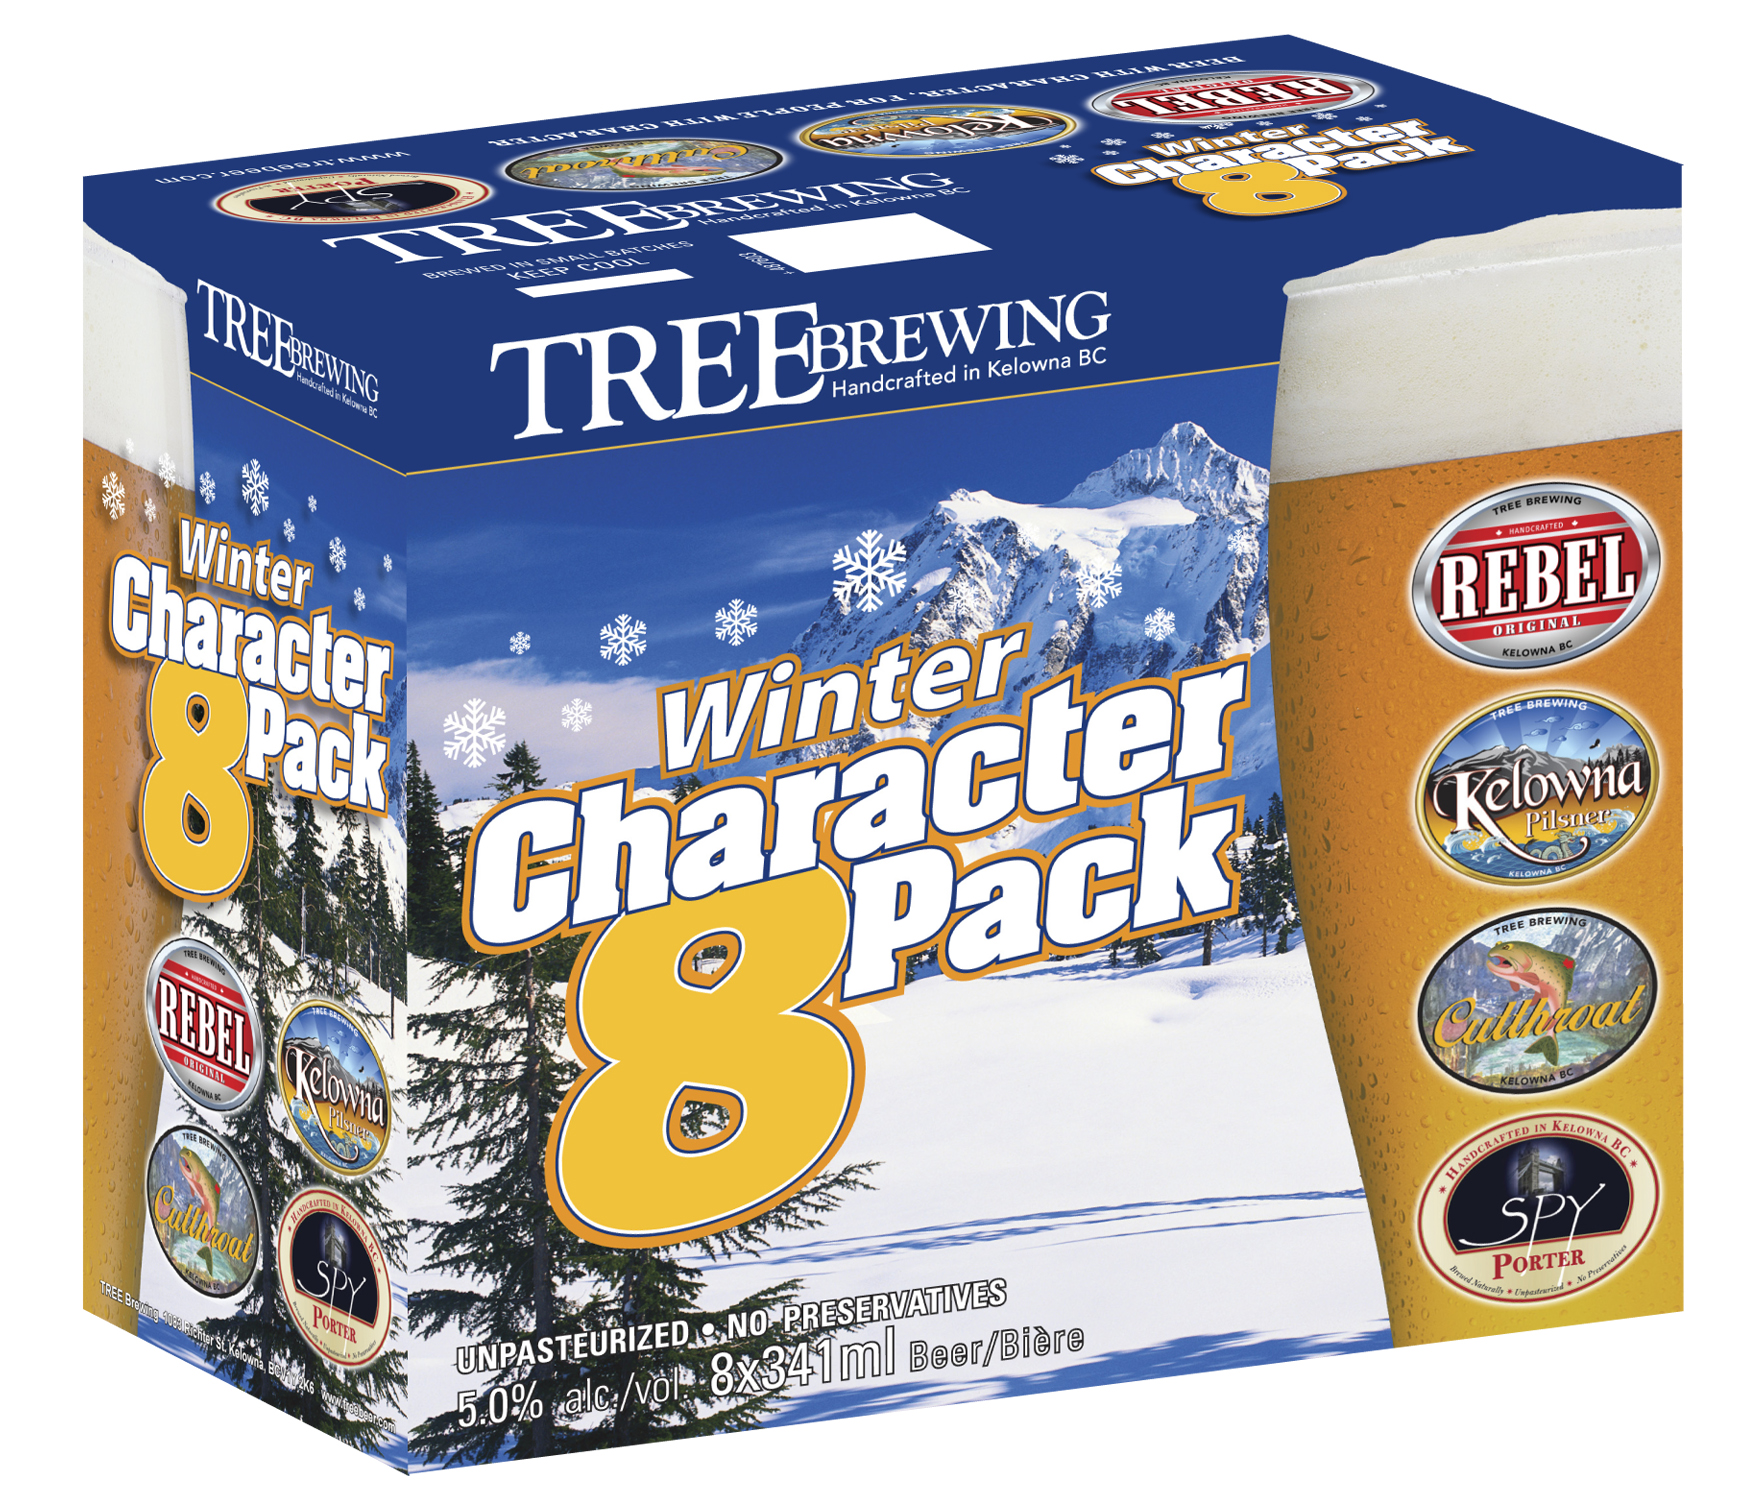 WTR 8Pack_3D Box Design.jpg